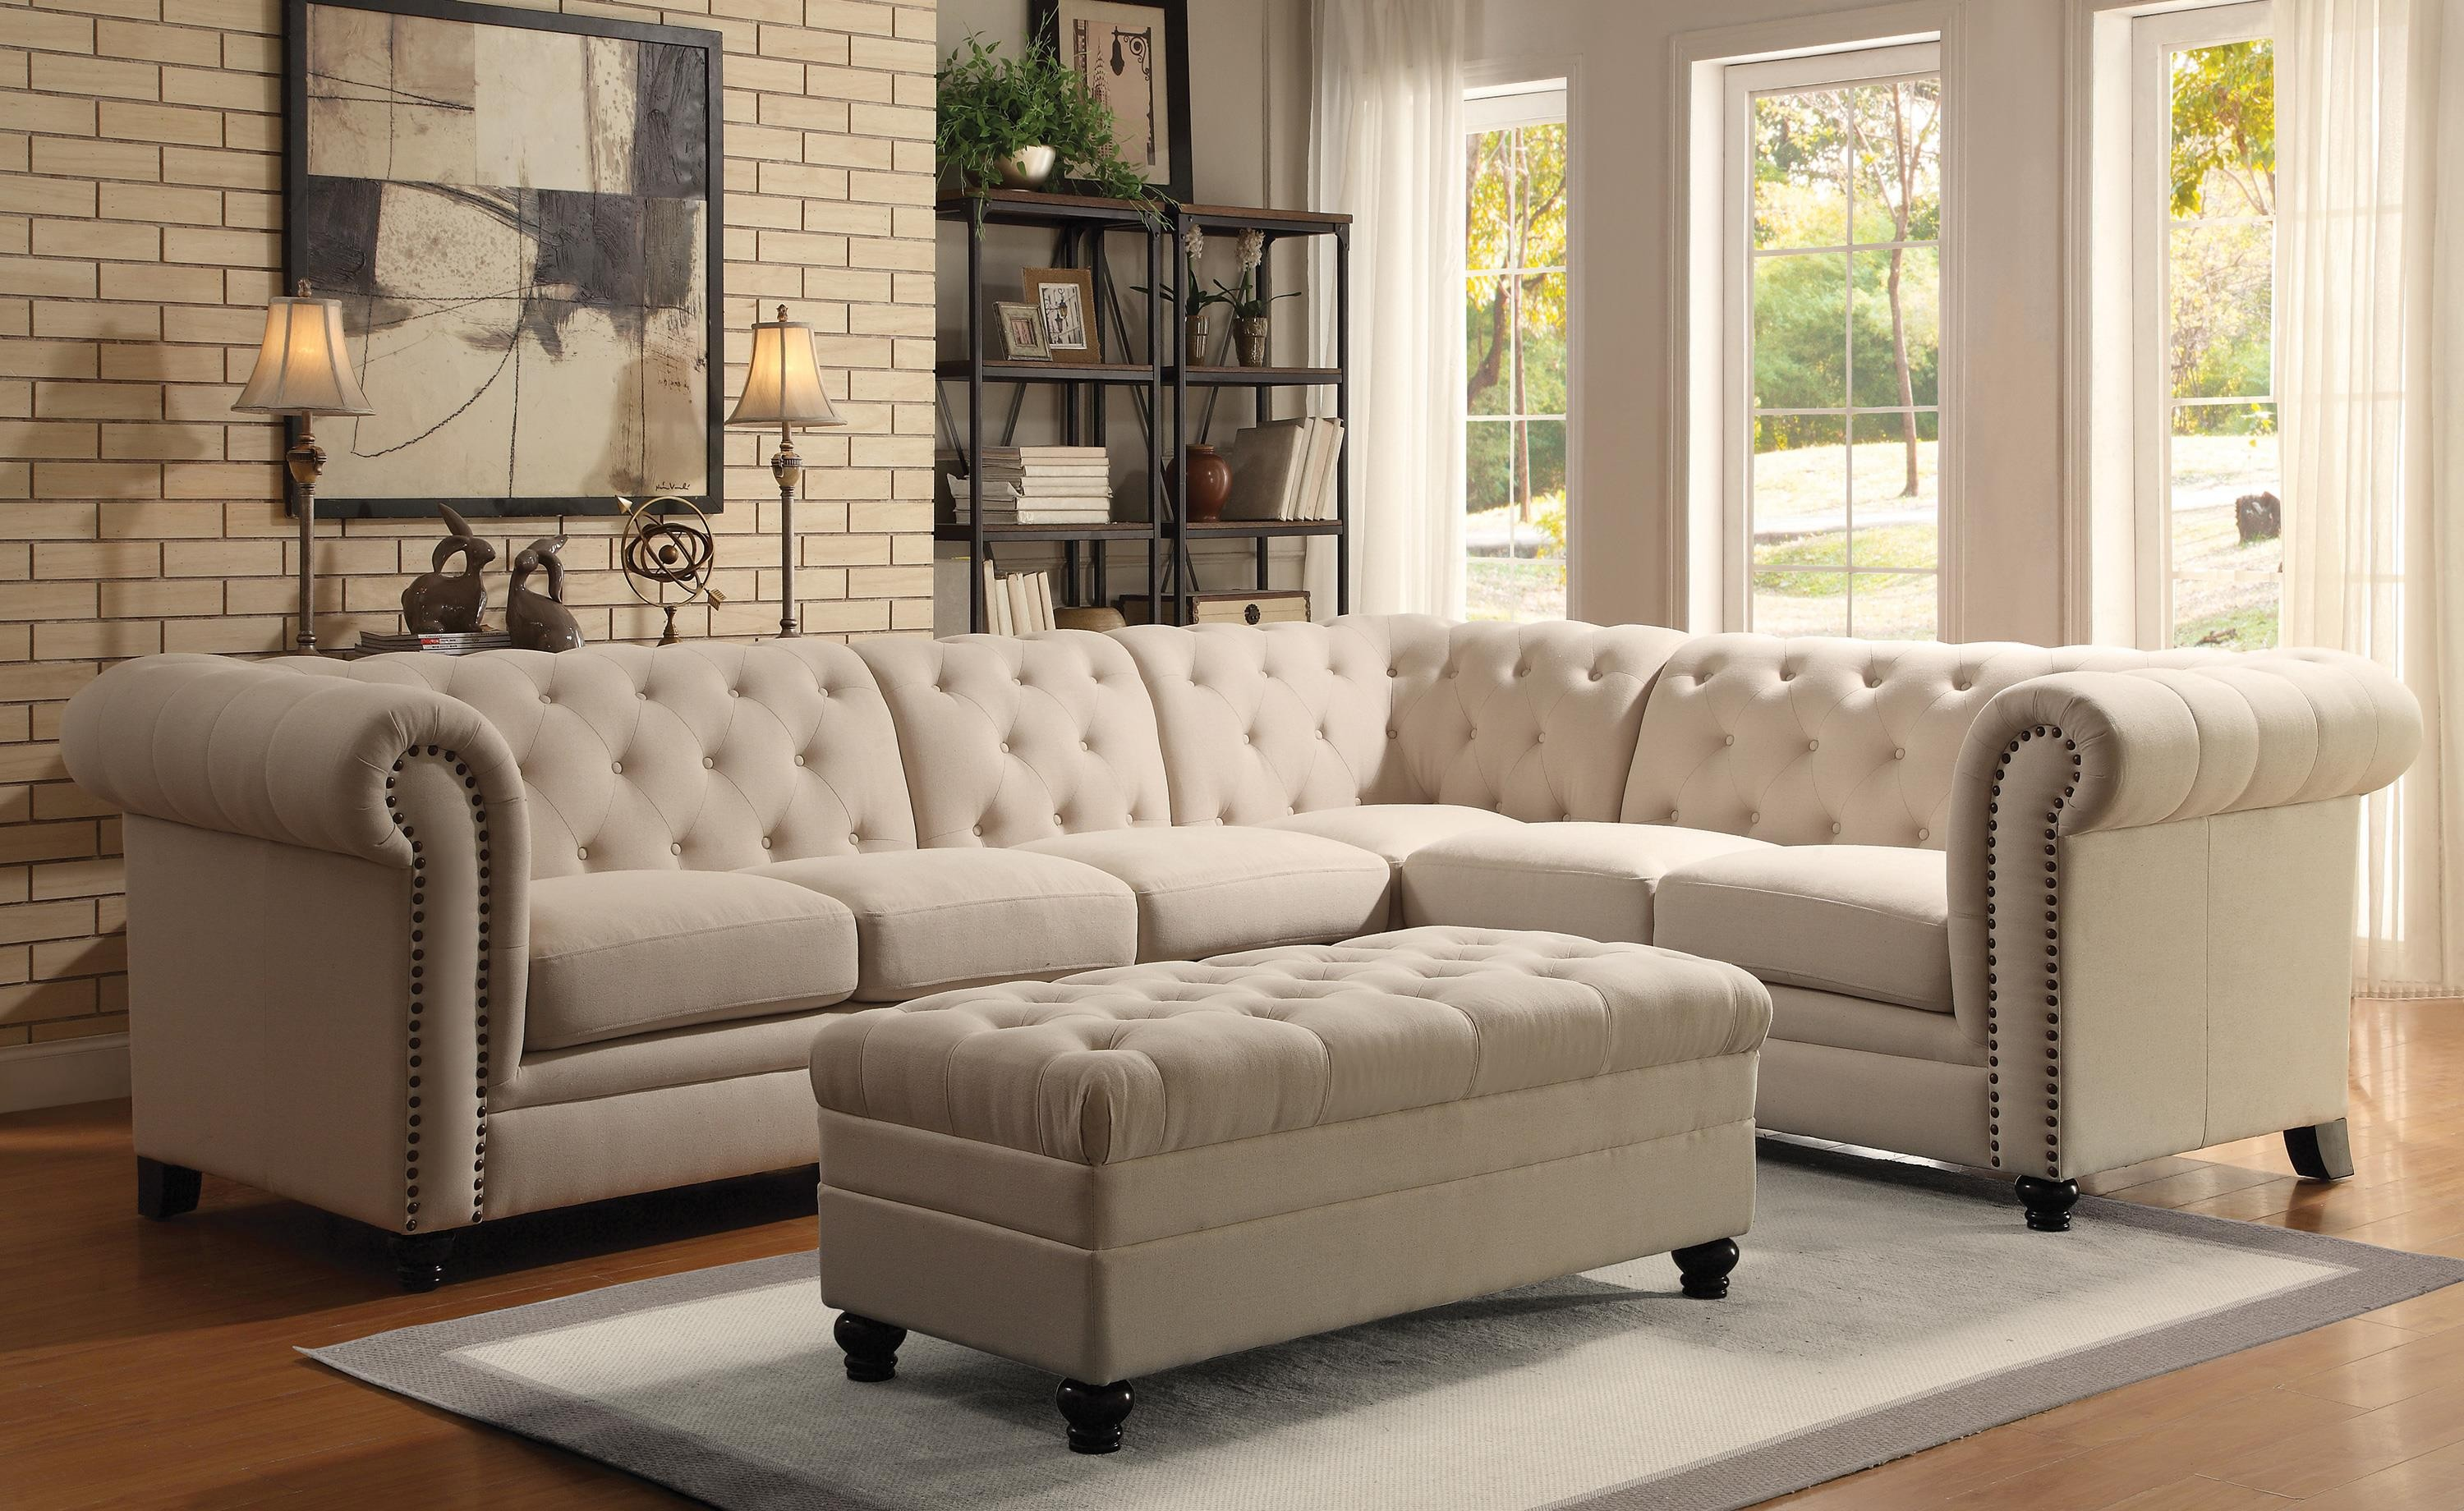 best of tufted sectional sofa gallery modern sofa design ideas rh payton construction com